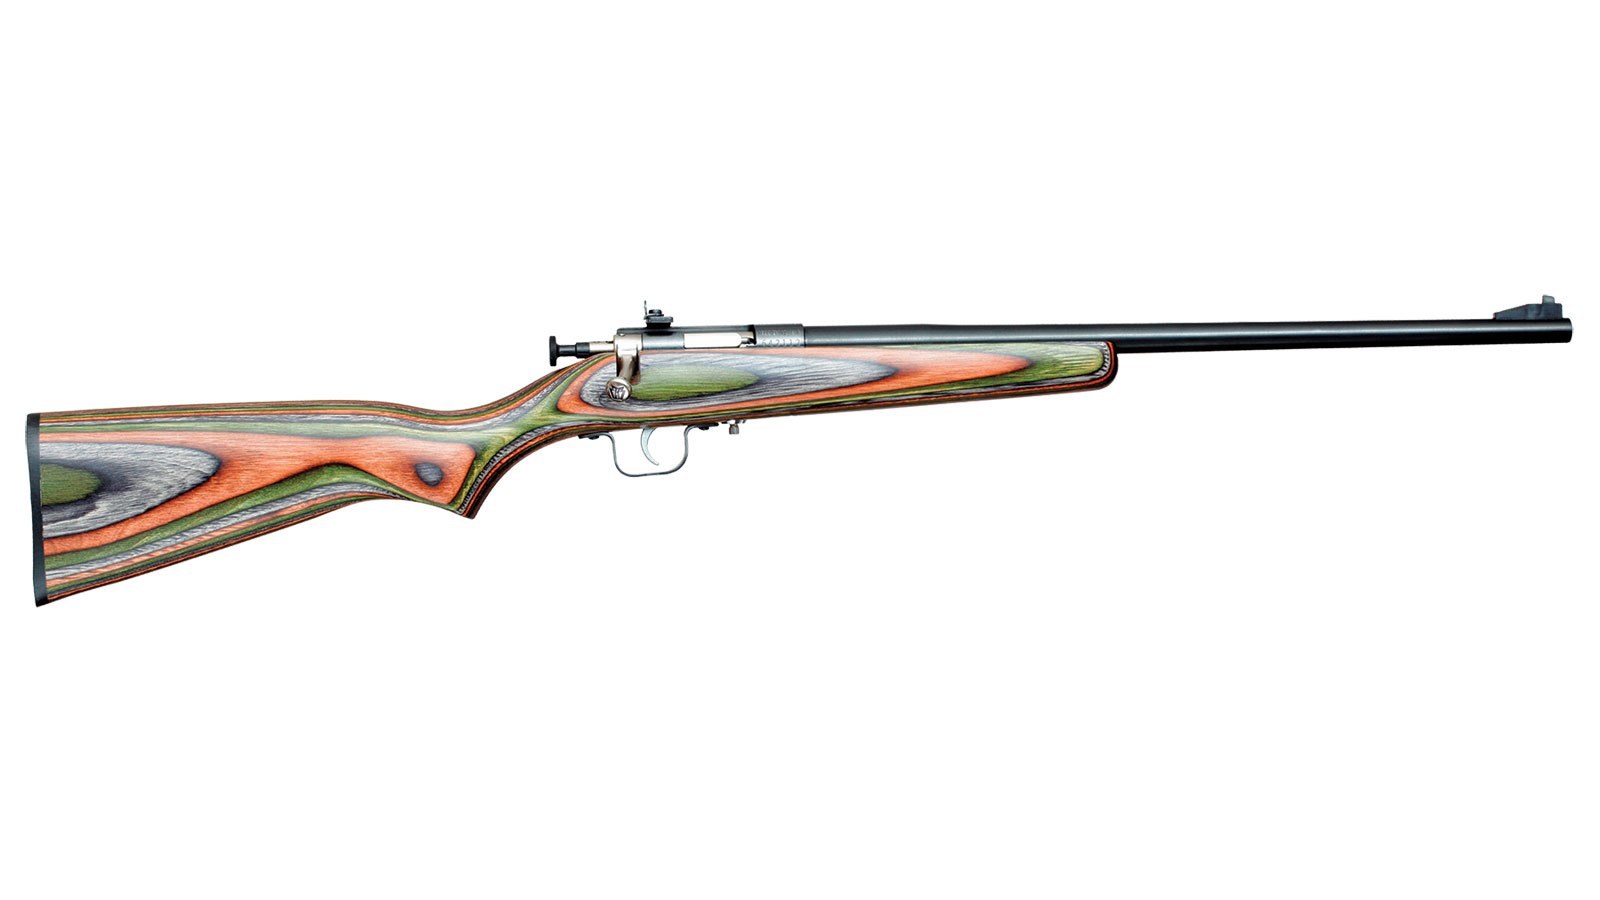 Crickett KSA2252 Single Shot Bolt 22 Long Rifle (LR) 16.12 1 Laminate Camouflage Stk Blued in.